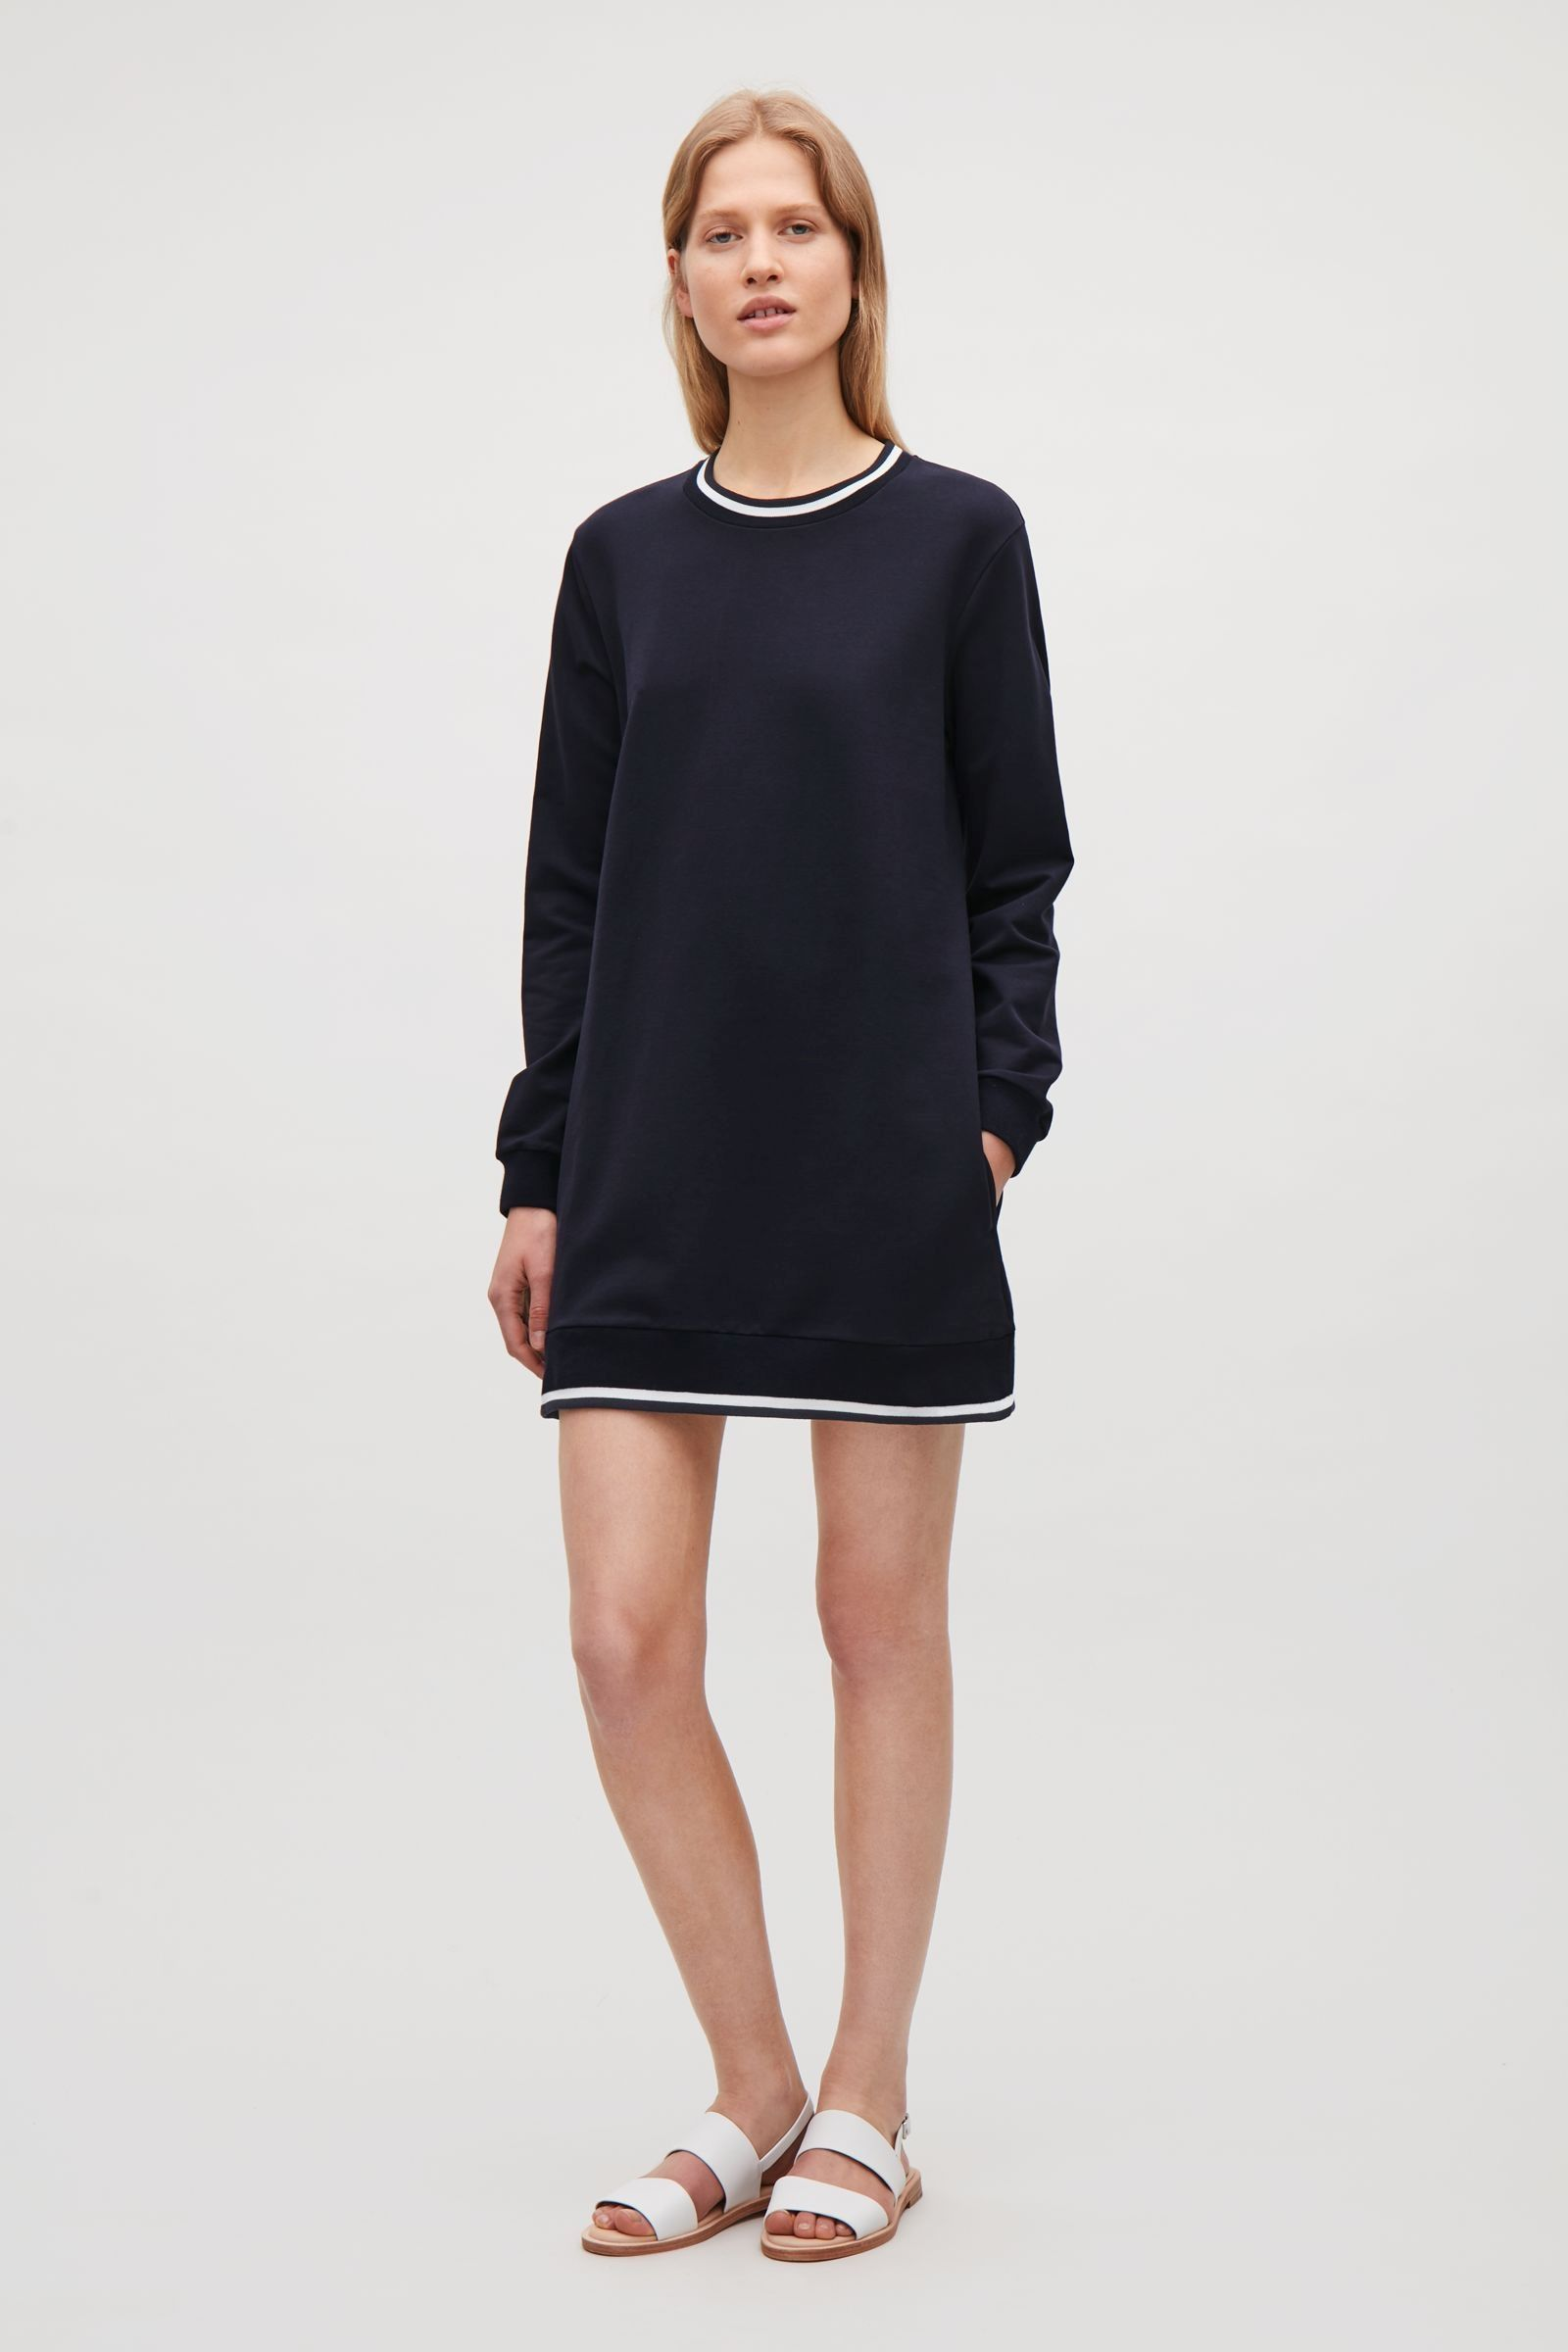 Cos image of sweatshirt dress in navy clothes pinterest